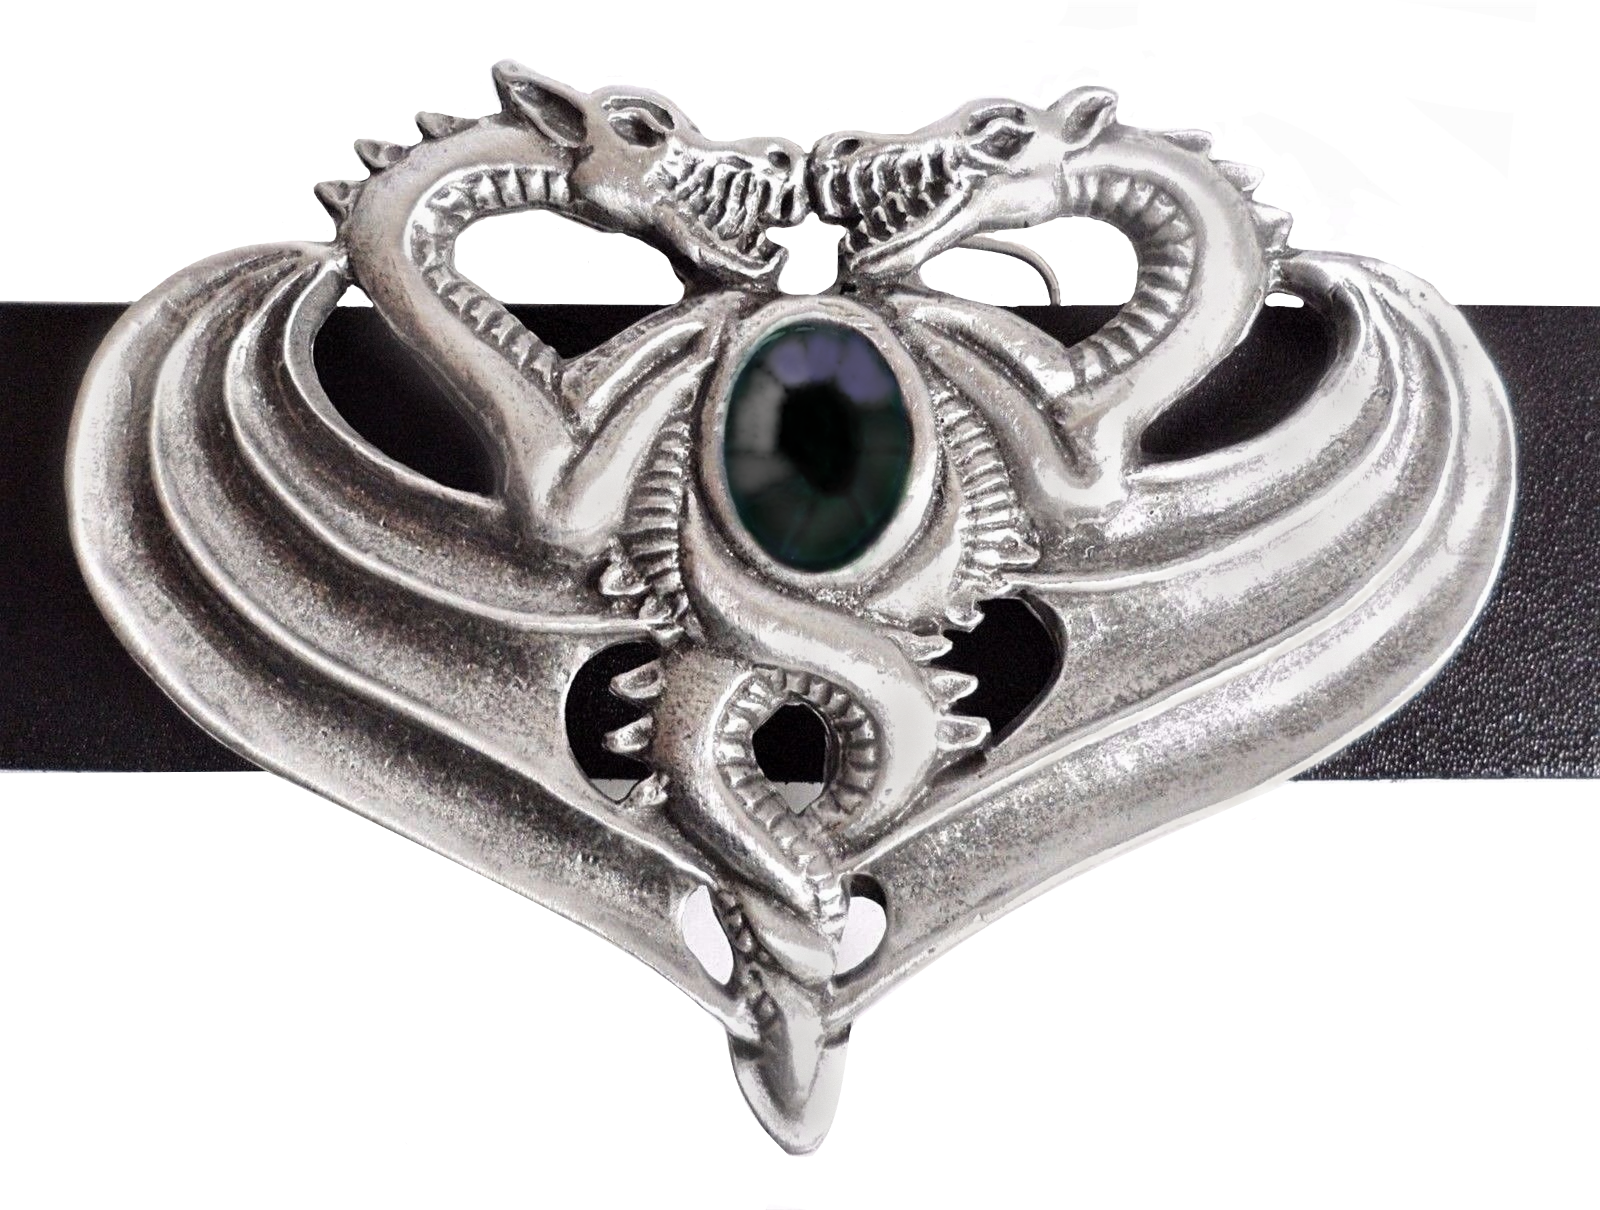 Opposing Dragons Belt Buckle - Hand Made in Pewter with Jet-coloured Stone